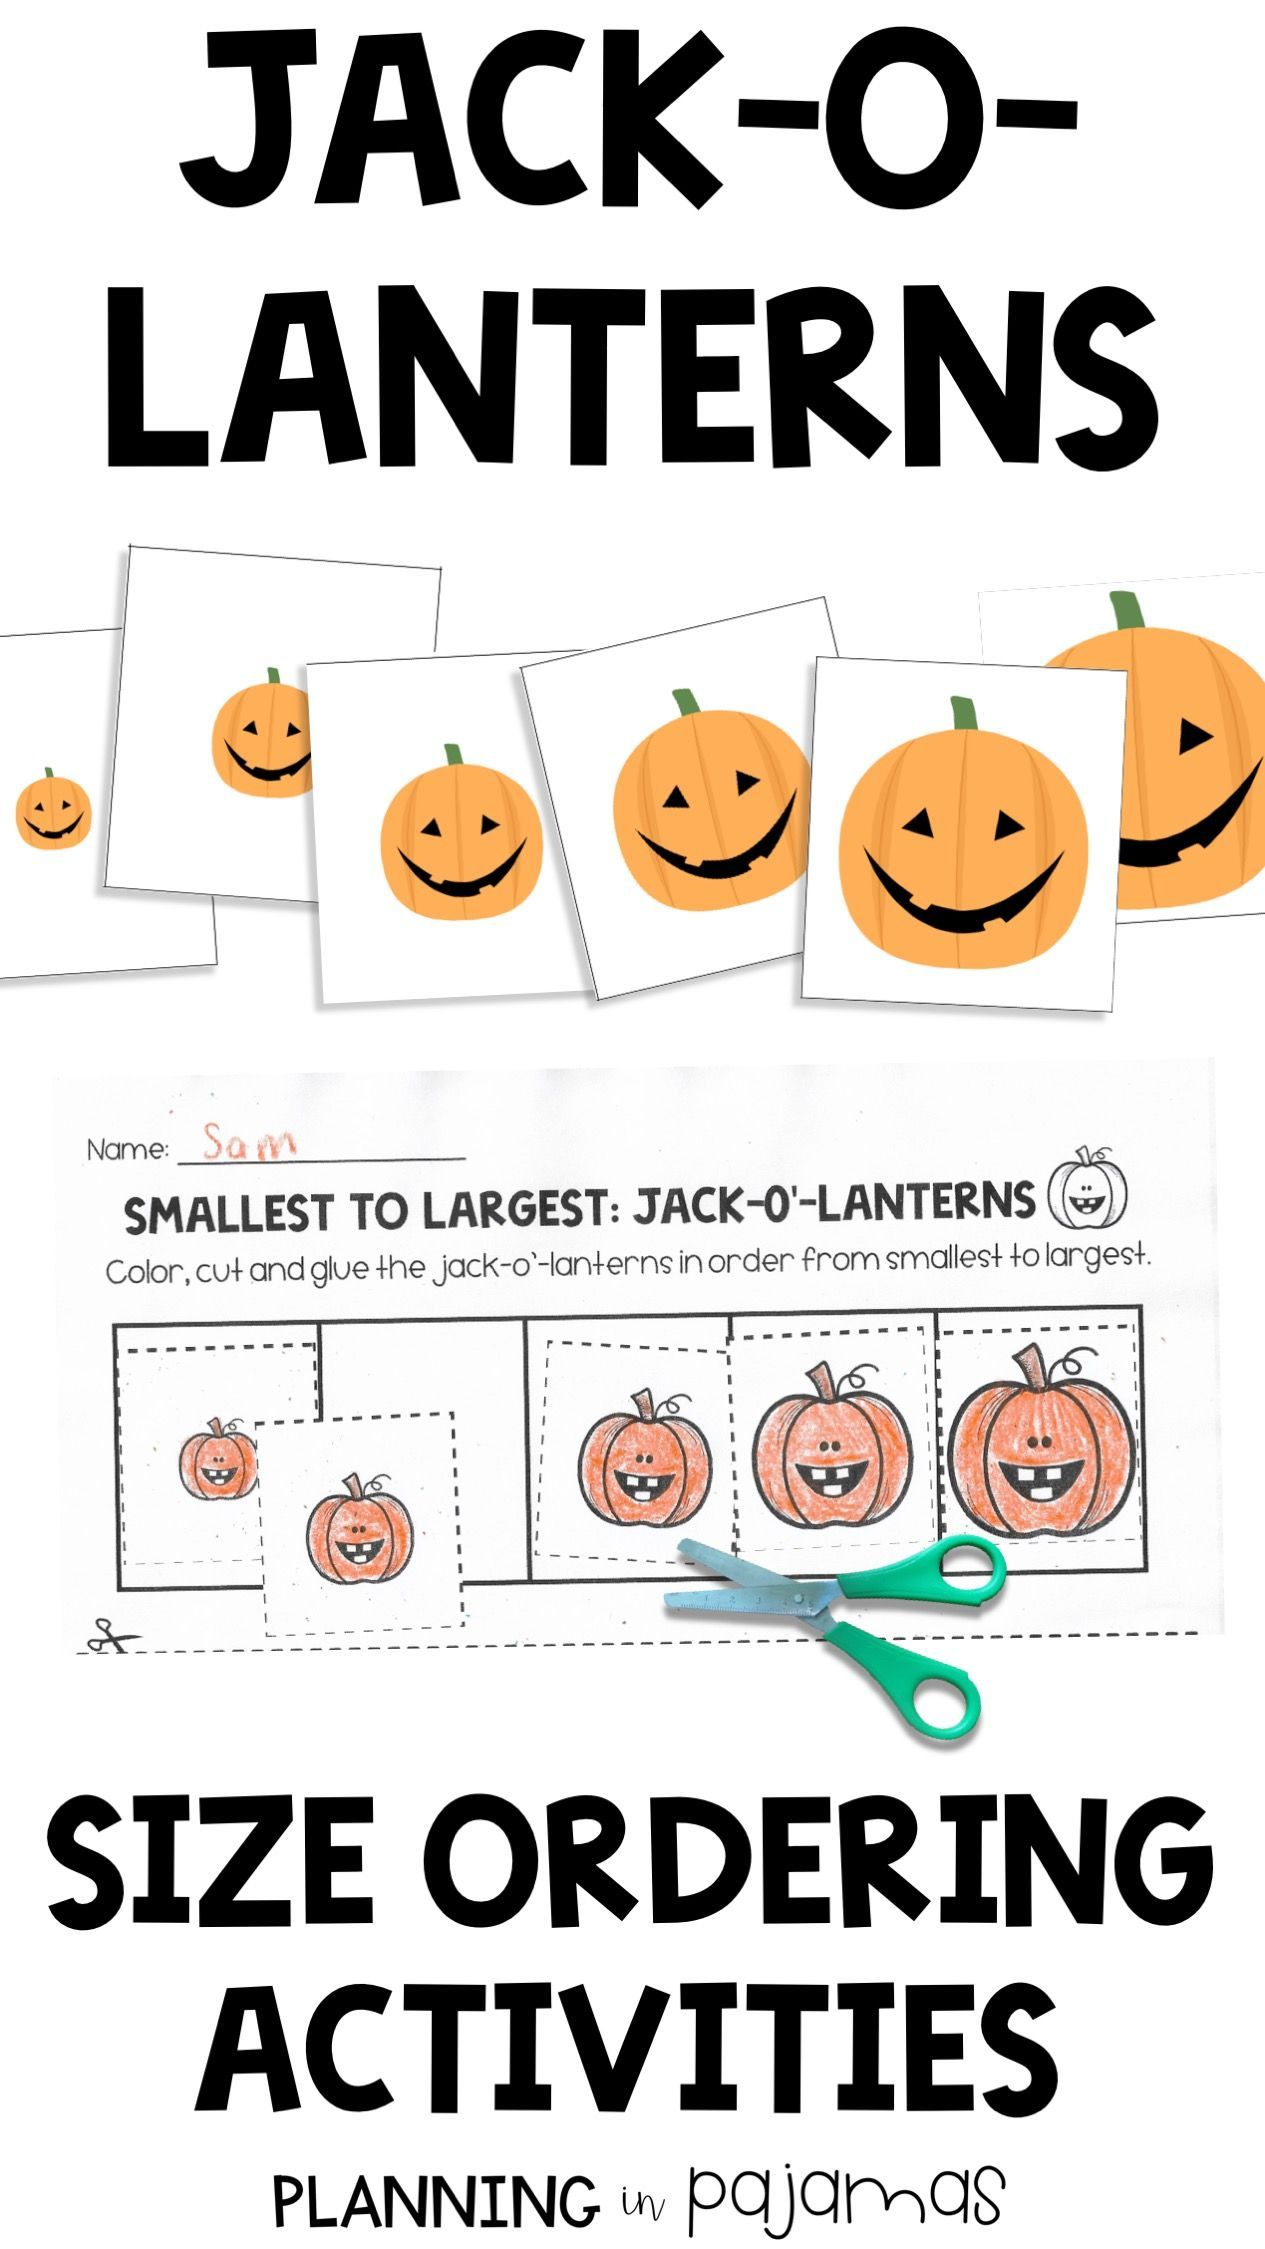 Jack O Lanterns Size Ordering From Smallest To Largest